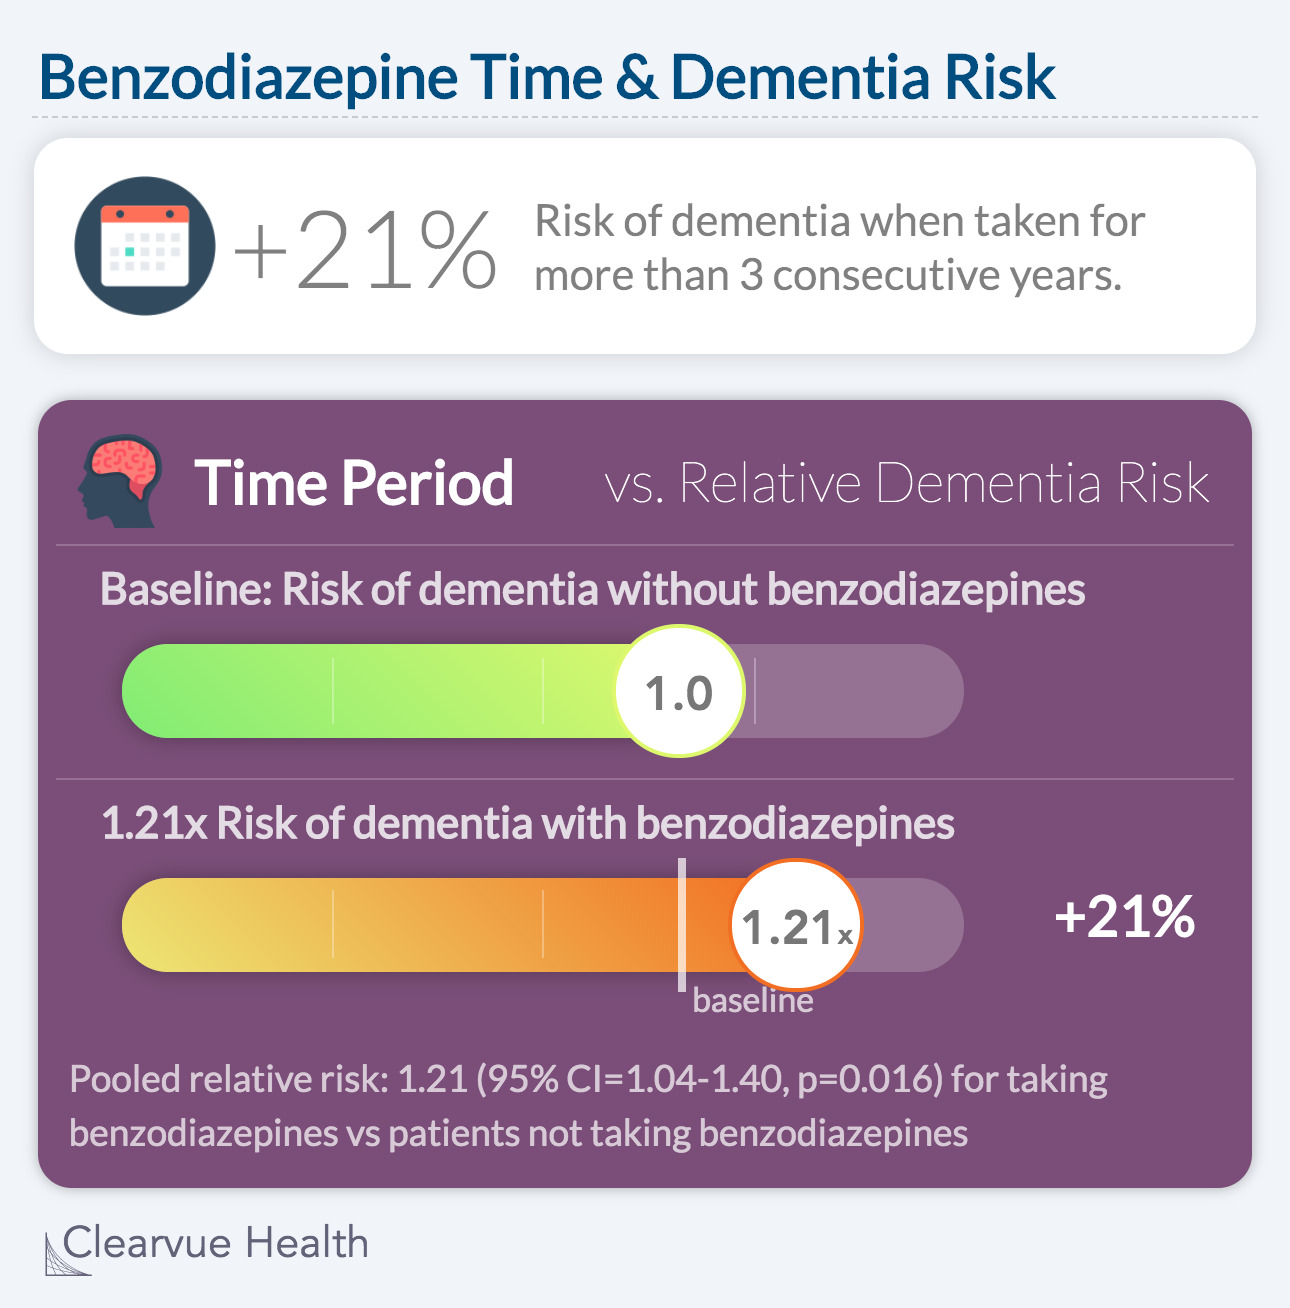 Benzodiazepine Time & Dementia Risk: +21% Risk of dementia when taken for more than 3 consecutive years.